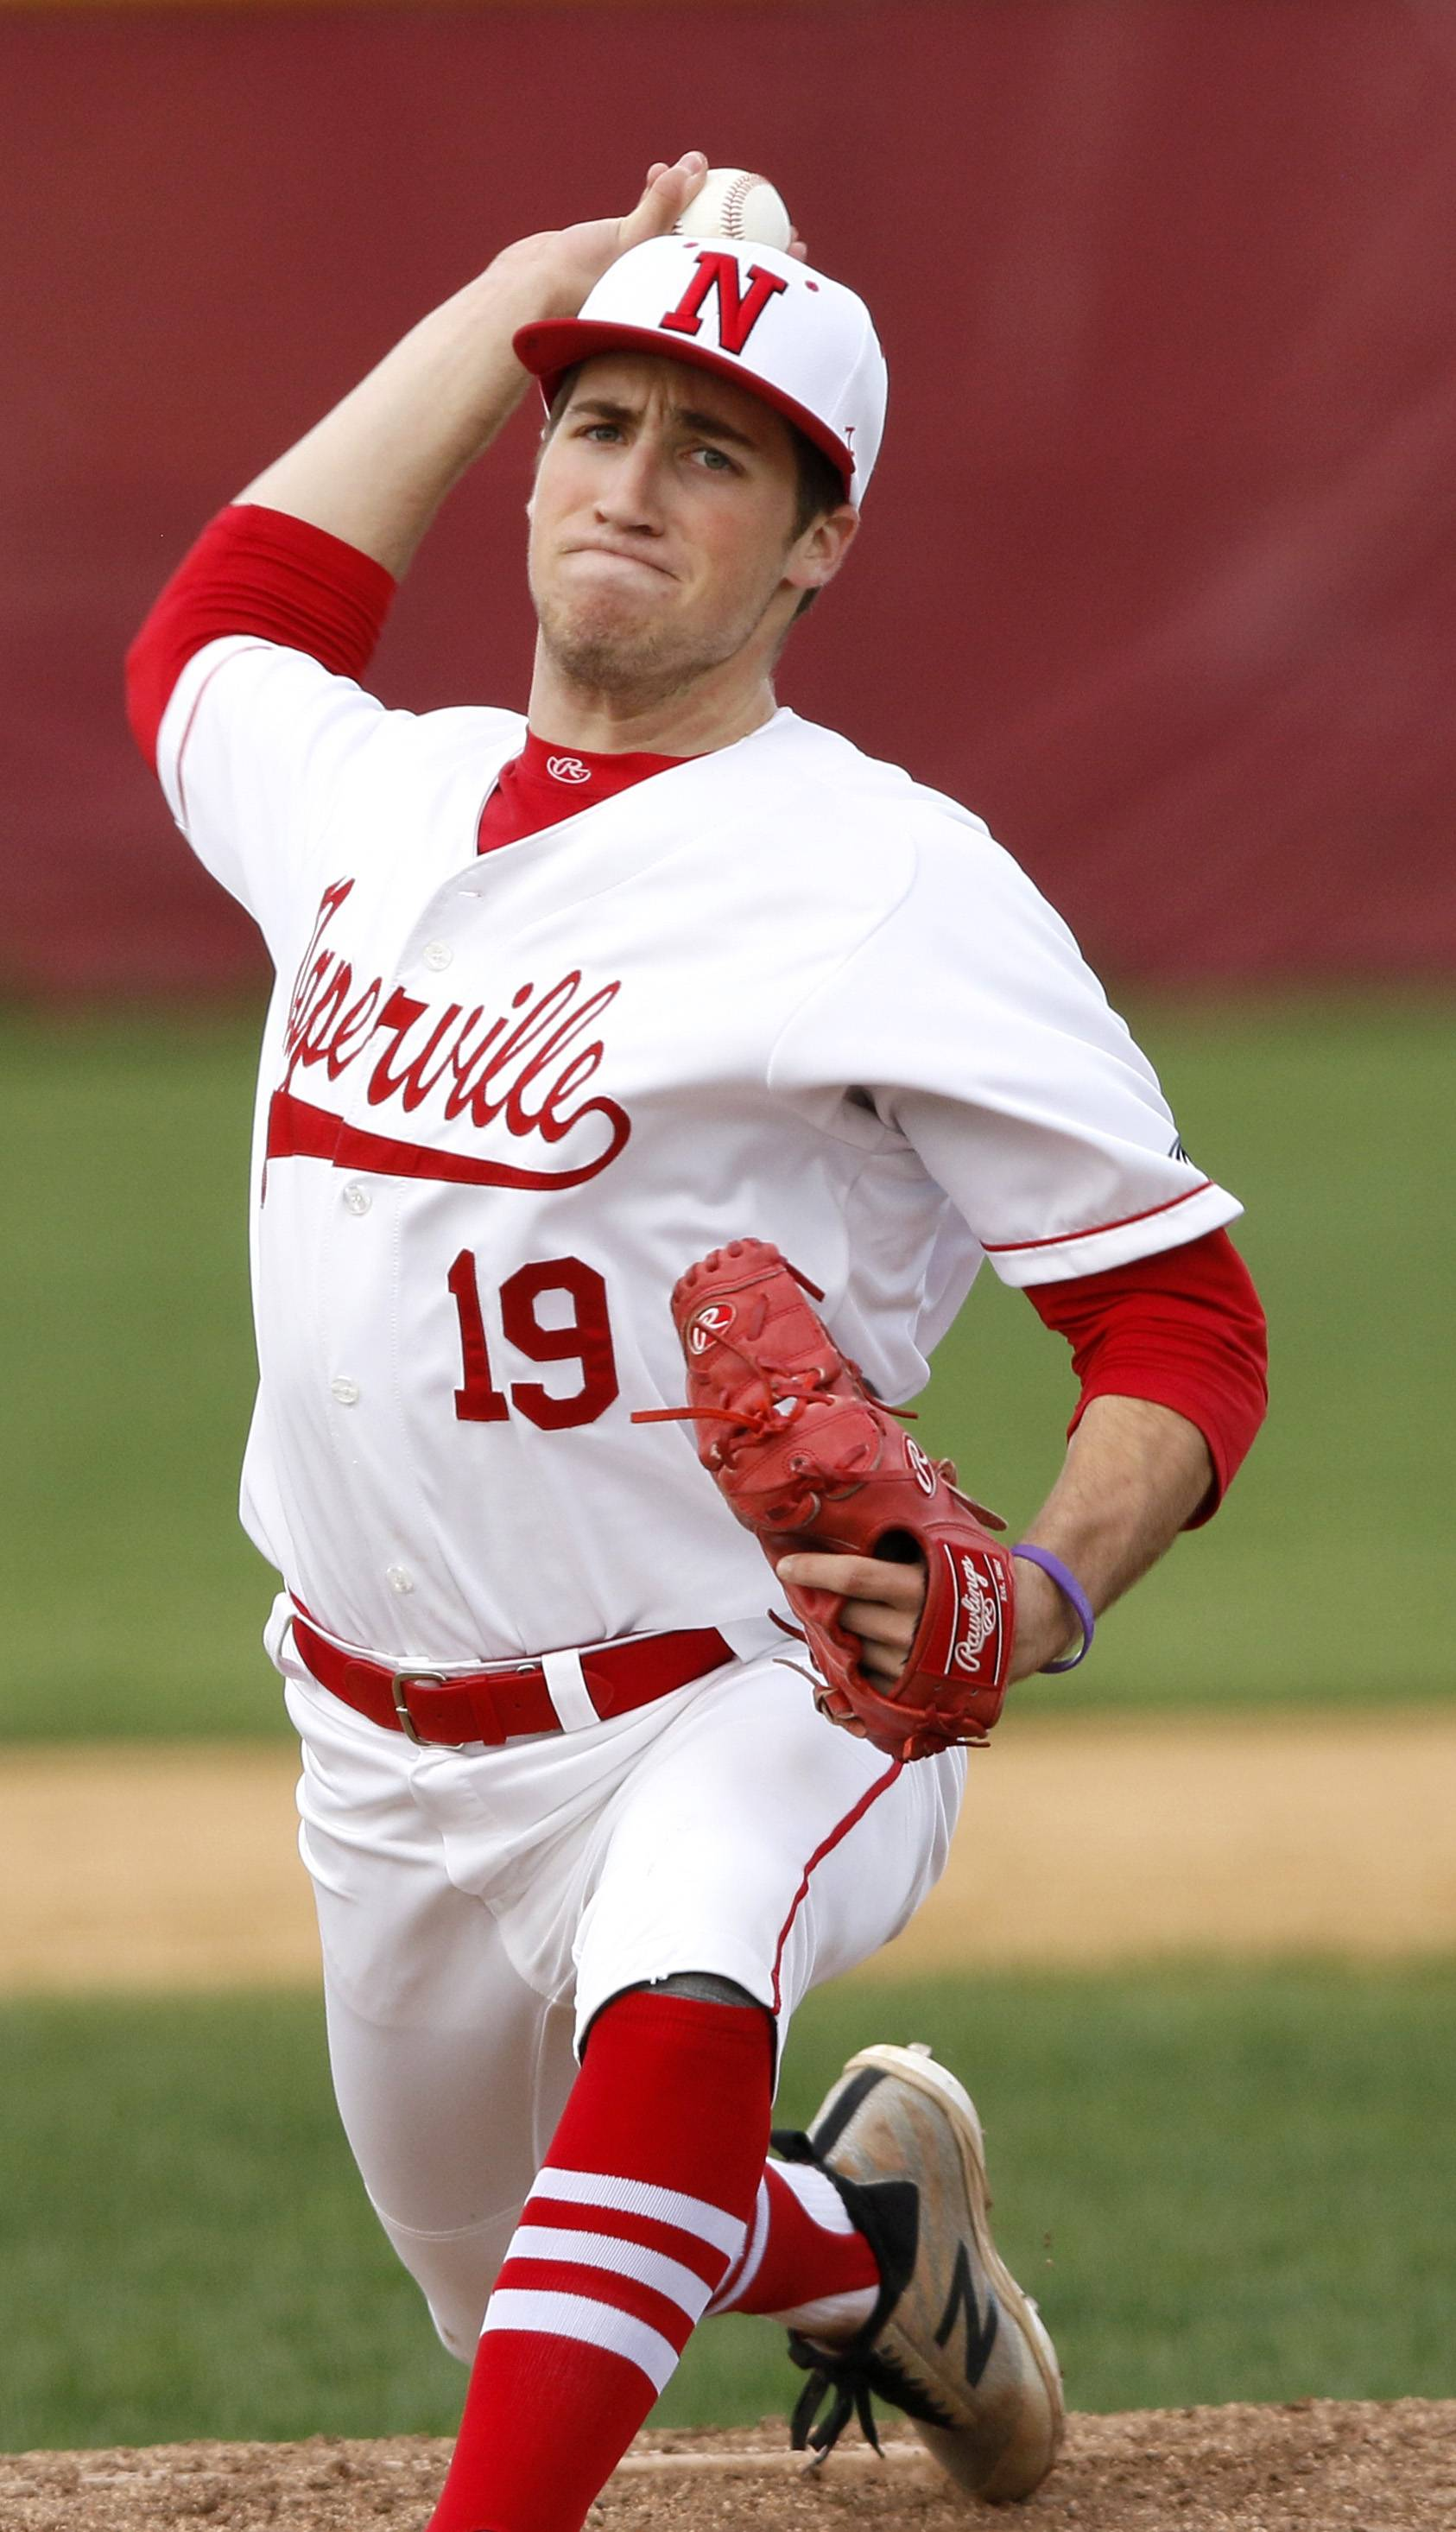 Naperville Central's Tyler Brinker delivers a pitch against Waubonsie Valley during a 5-3 win in Naperville.